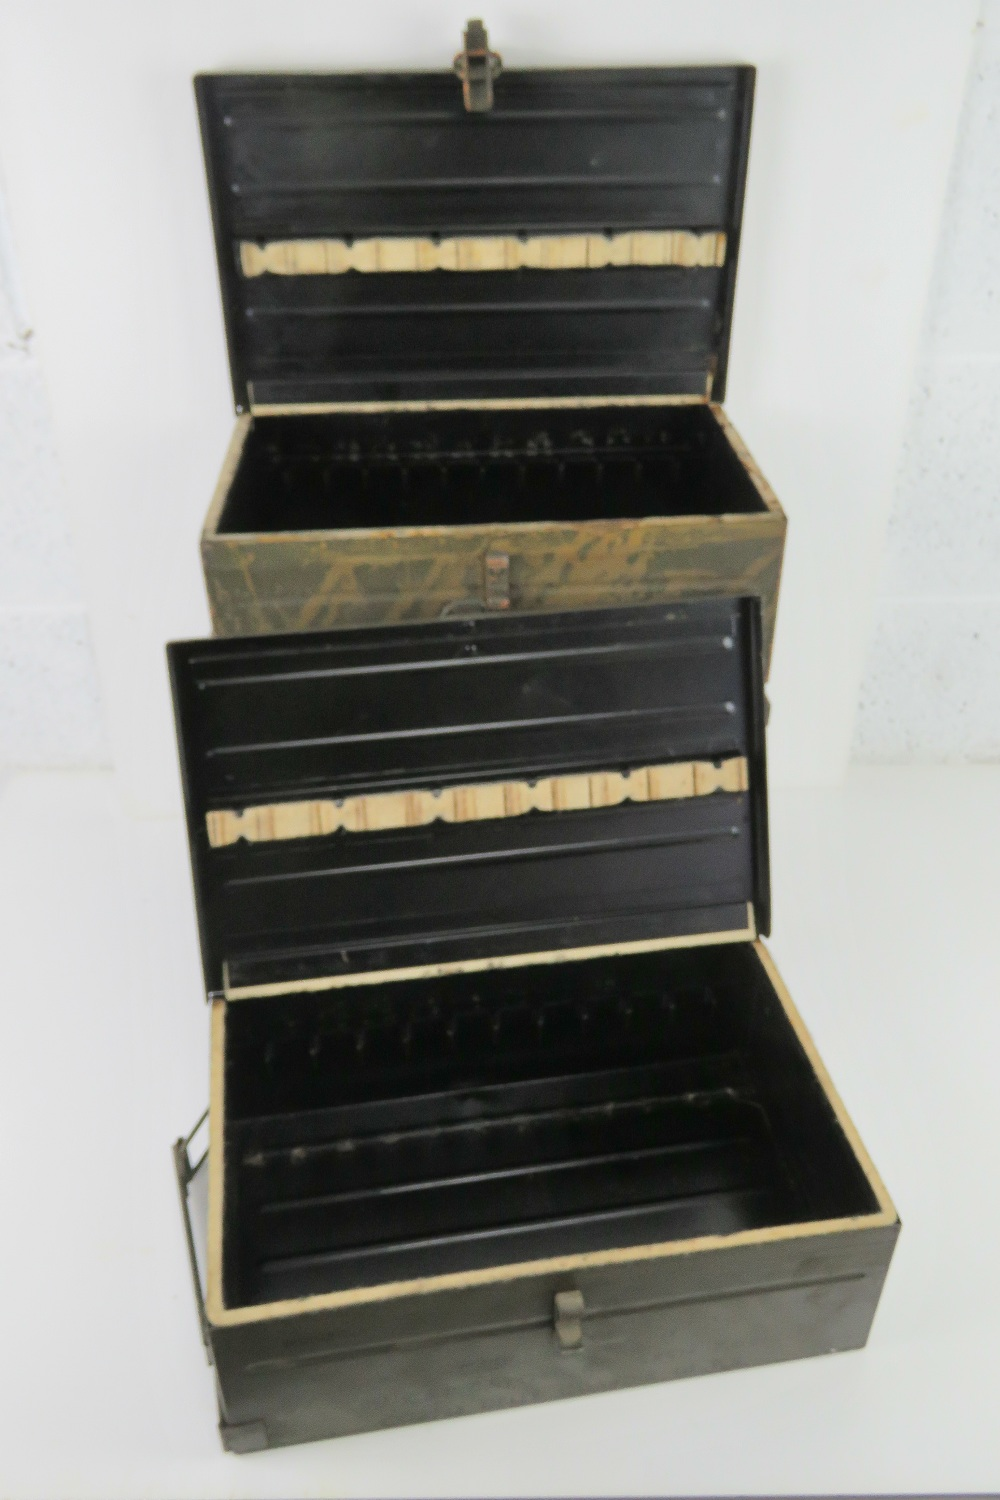 A quantity of four Italian 7.62 Bren magazines transit boxes. - Image 3 of 4